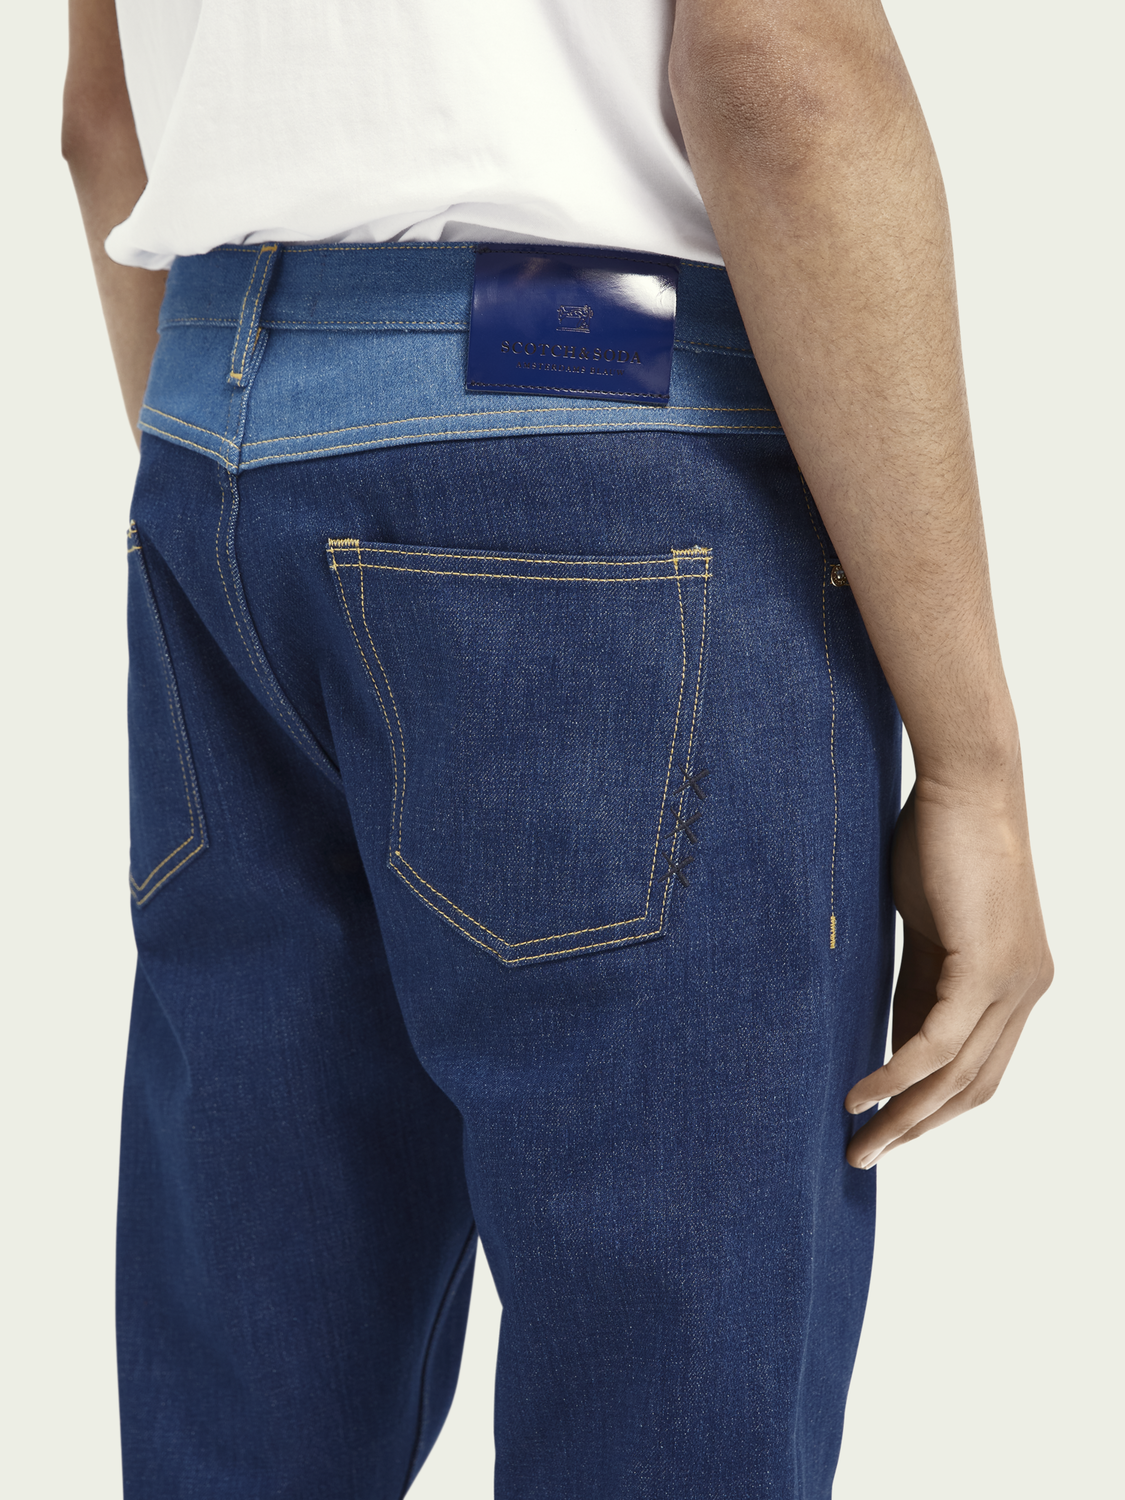 Men The Norm straight high-rise jeans ─ Dress For Adventure